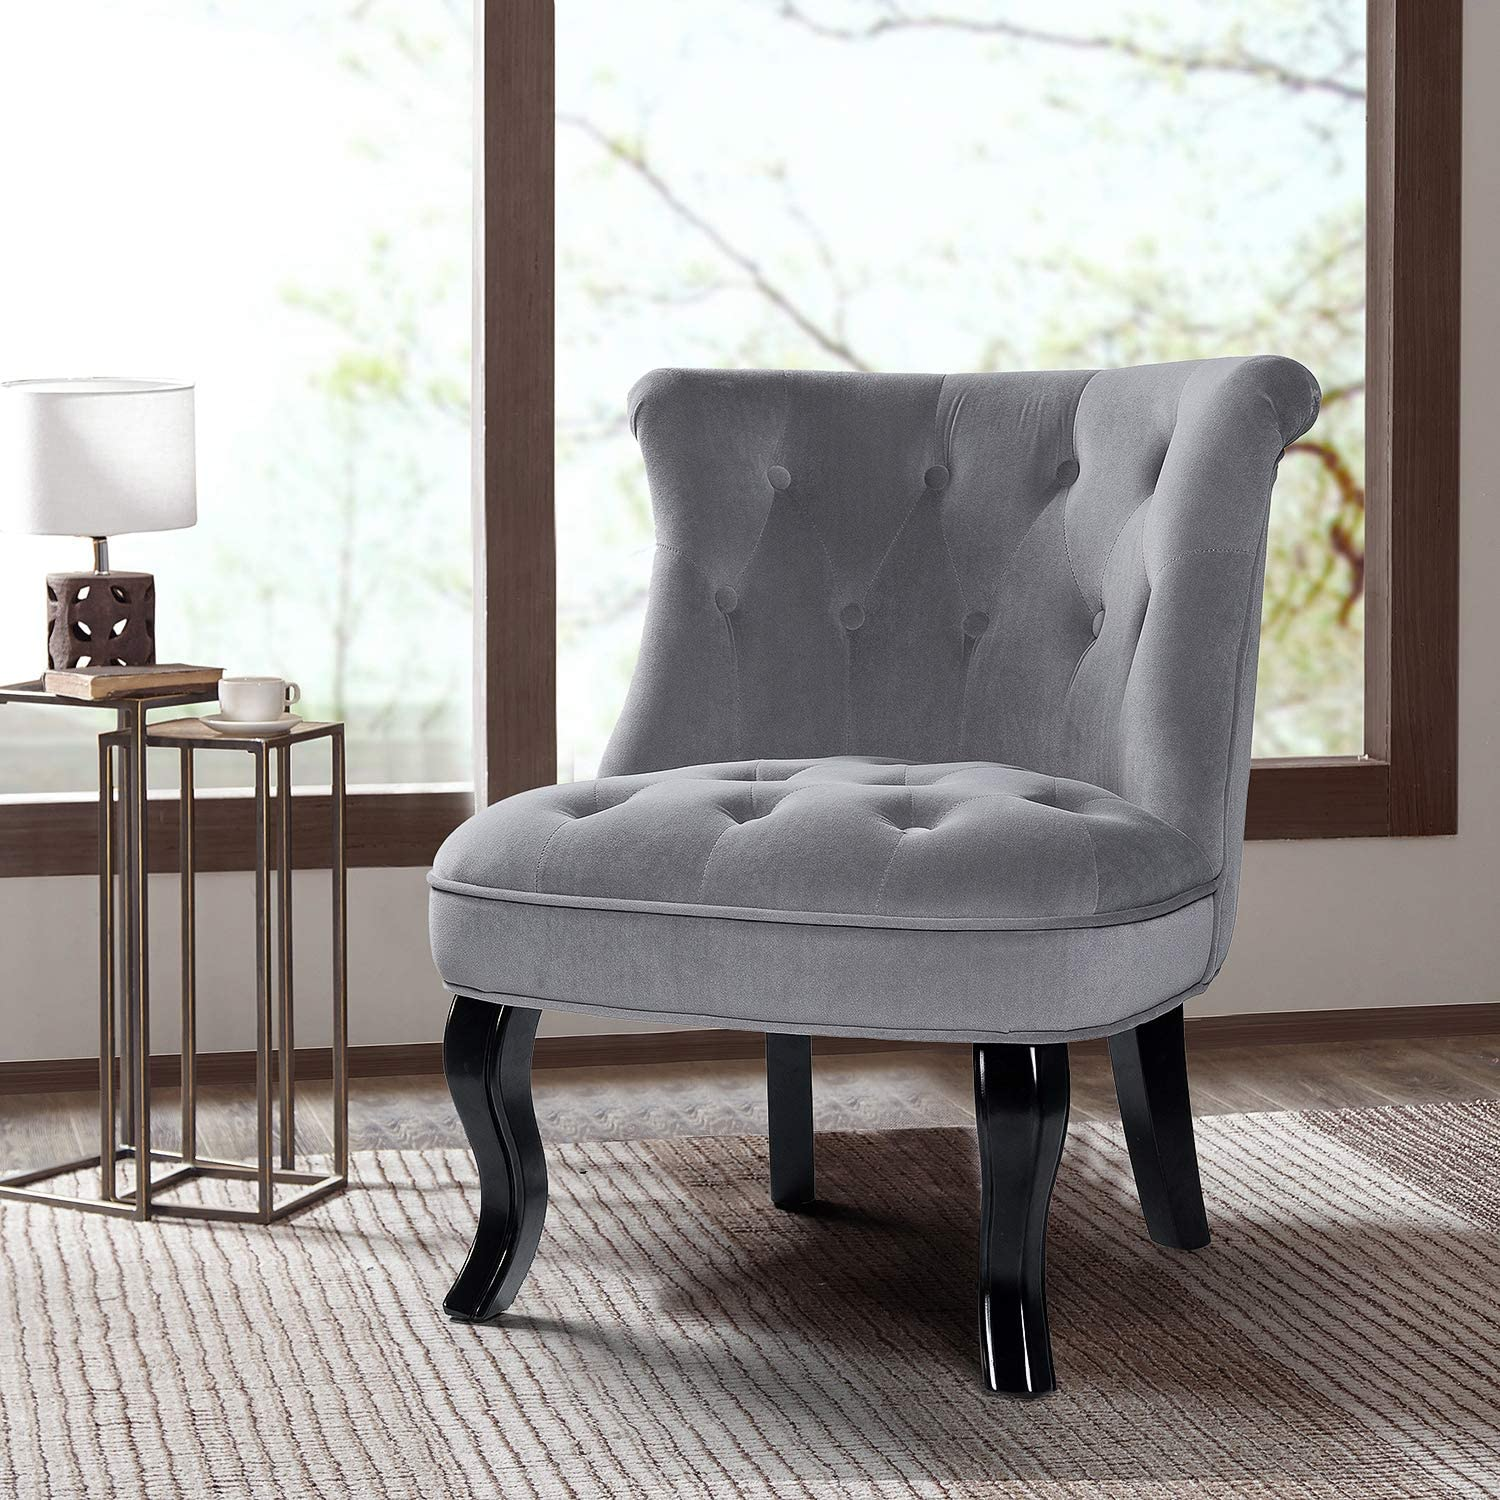 Blush Pink Pink Upholstered Chair//Jane Tufted Velvet Armless Accent Chair with Black Birch Wood Legs